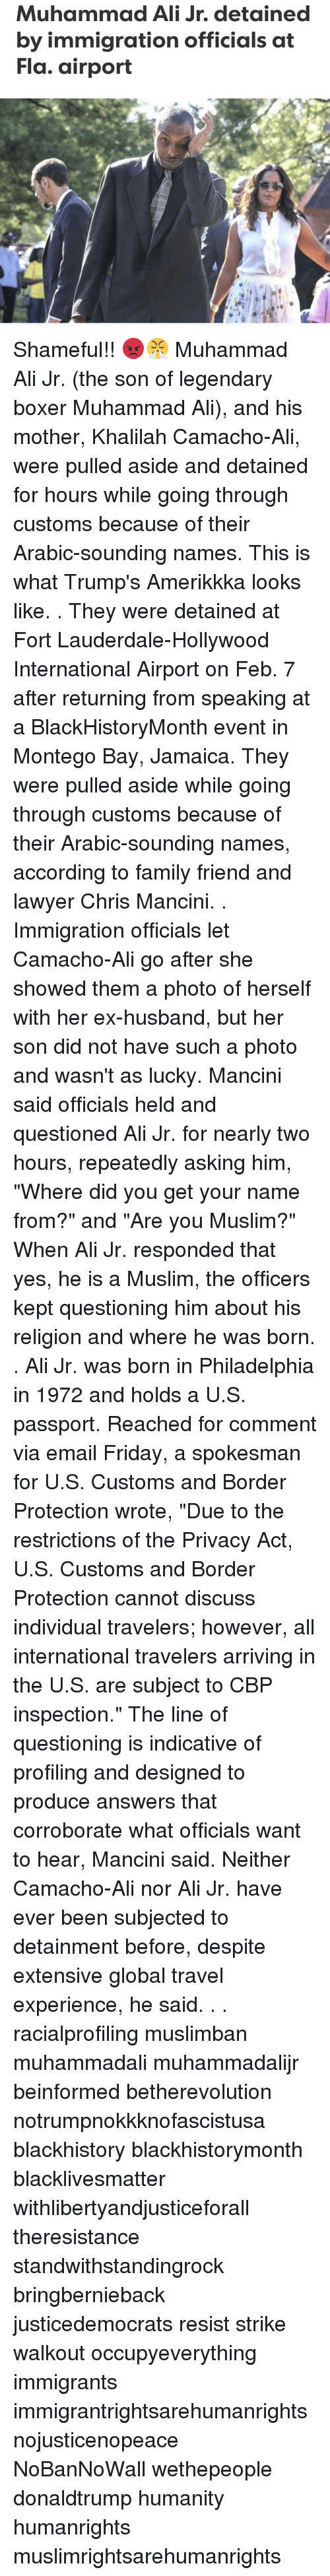 """Ali, Ex's, and Lawyer: Muhammad Ali Jr. detained  by immigration officials at  Fla. airport Shameful!! 😡😤 Muhammad Ali Jr. (the son of legendary boxer Muhammad Ali), and his mother, Khalilah Camacho-Ali, were pulled aside and detained for hours while going through customs because of their Arabic-sounding names. This is what Trump's Amerikkka looks like. . They were detained at Fort Lauderdale-Hollywood International Airport on Feb. 7 after returning from speaking at a BlackHistoryMonth event in Montego Bay, Jamaica. They were pulled aside while going through customs because of their Arabic-sounding names, according to family friend and lawyer Chris Mancini. . Immigration officials let Camacho-Ali go after she showed them a photo of herself with her ex-husband, but her son did not have such a photo and wasn't as lucky. Mancini said officials held and questioned Ali Jr. for nearly two hours, repeatedly asking him, """"Where did you get your name from?"""" and """"Are you Muslim?"""" When Ali Jr. responded that yes, he is a Muslim, the officers kept questioning him about his religion and where he was born. . Ali Jr. was born in Philadelphia in 1972 and holds a U.S. passport. Reached for comment via email Friday, a spokesman for U.S. Customs and Border Protection wrote, """"Due to the restrictions of the Privacy Act, U.S. Customs and Border Protection cannot discuss individual travelers; however, all international travelers arriving in the U.S. are subject to CBP inspection."""" The line of questioning is indicative of profiling and designed to produce answers that corroborate what officials want to hear, Mancini said. Neither Camacho-Ali nor Ali Jr. have ever been subjected to detainment before, despite extensive global travel experience, he said. . . racialprofiling muslimban muhammadali muhammadalijr beinformed betherevolution notrumpnokkknofascistusa blackhistory blackhistorymonth blacklivesmatter withlibertyandjusticeforall theresistance standwithstandingrock bringbernieback justice"""